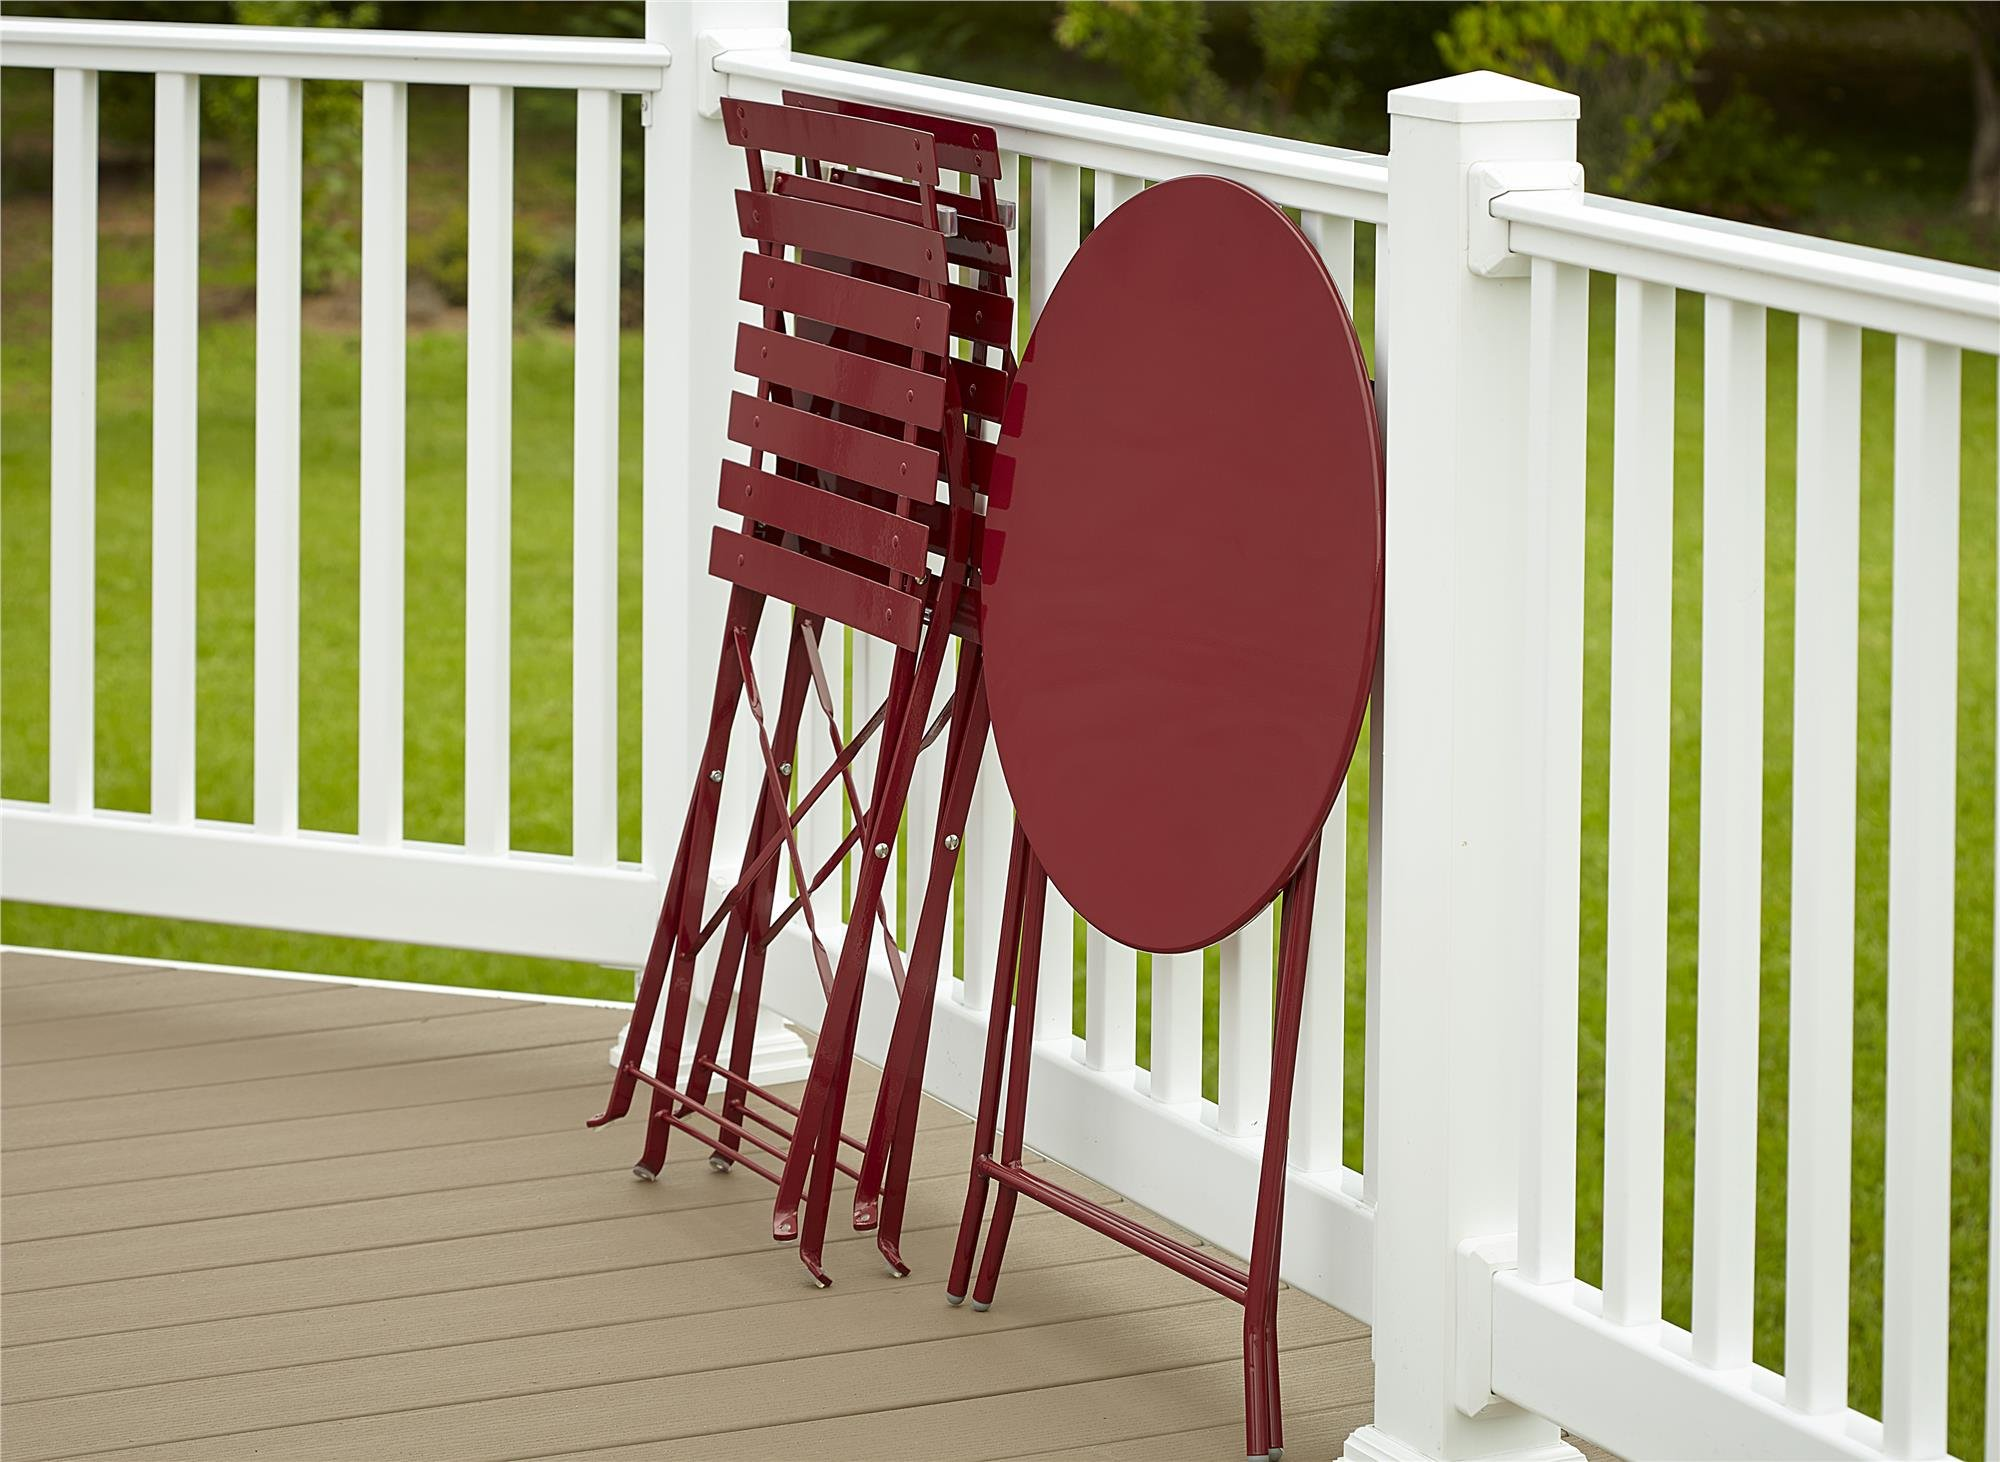 Cosco Outdoor Bistro Set, 3 Piece, Folding, Red by Cosco Outdoor Living (Image #3)